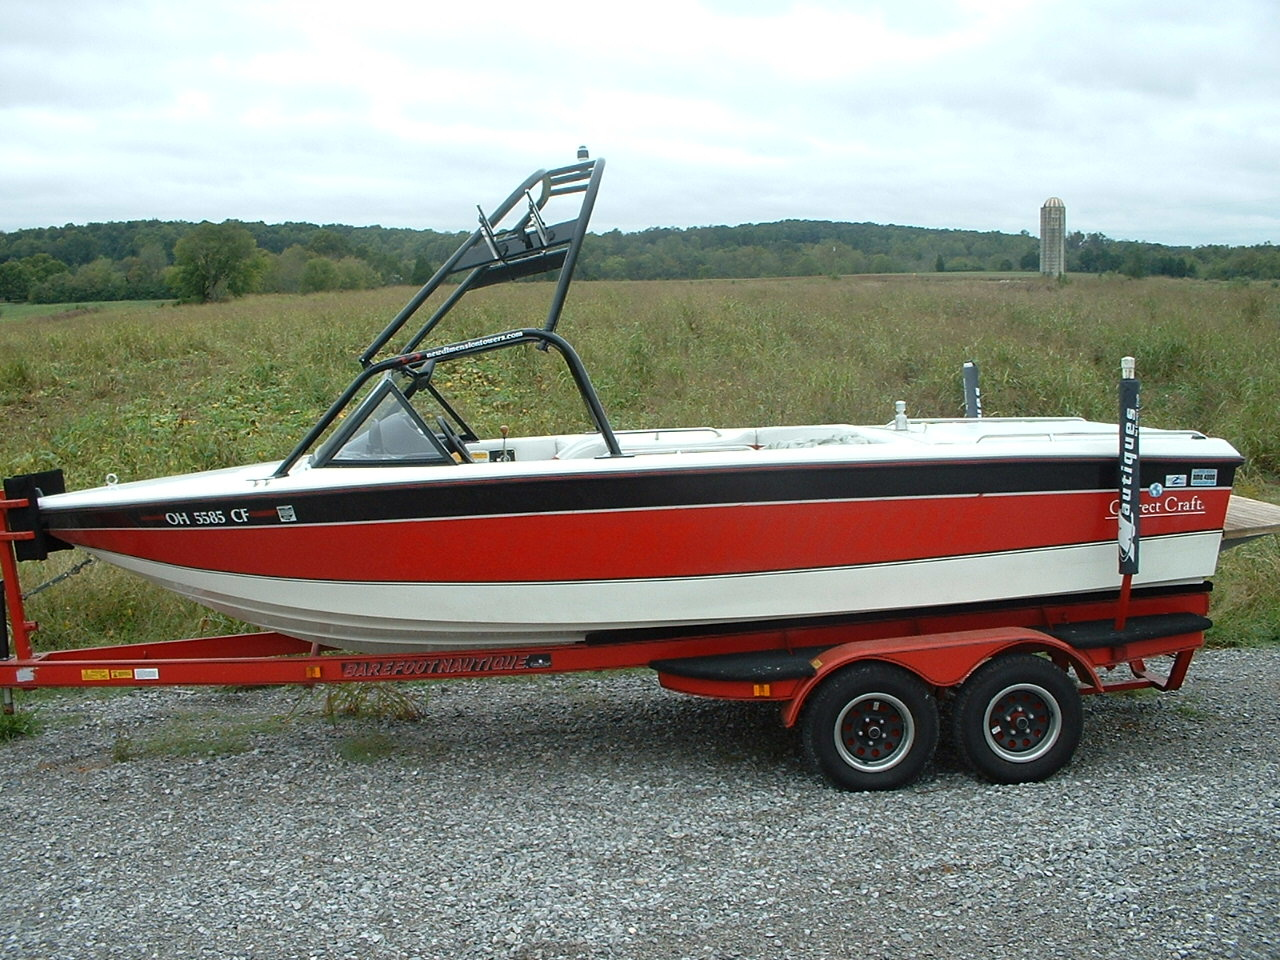 main view of 91 - 94 barefoot nautique with new dimension wakeboard tower